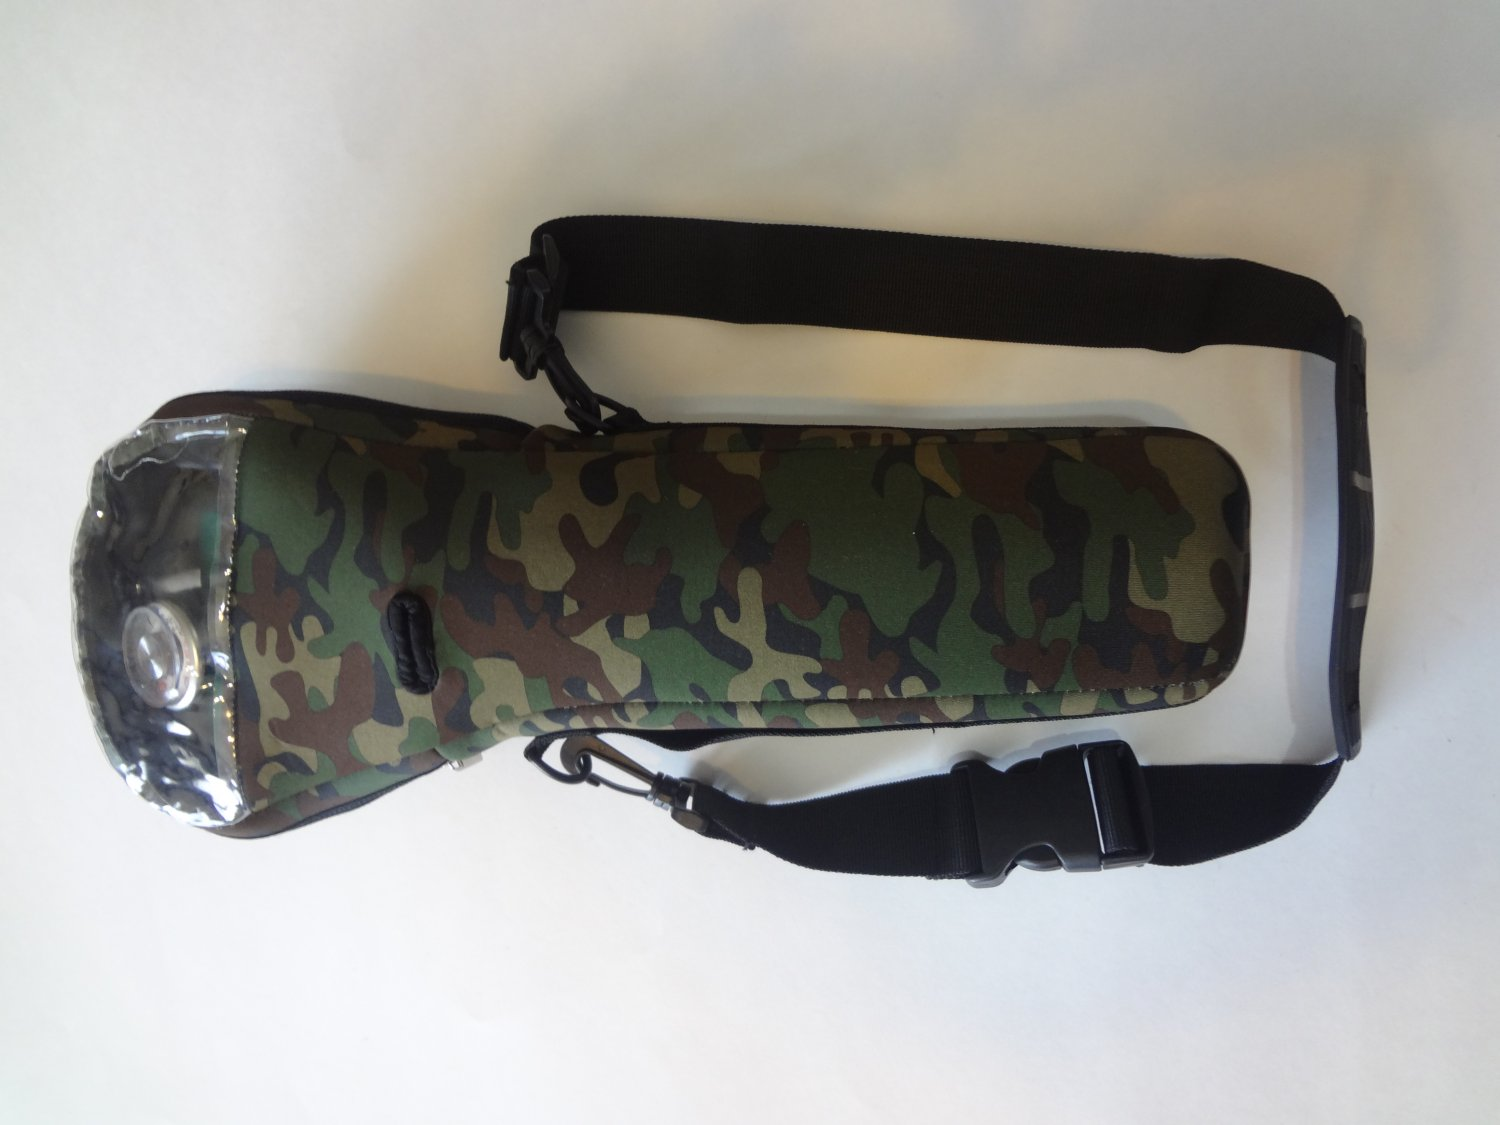 Camo oxygen cylinder carrier for B or M-6 cylinders